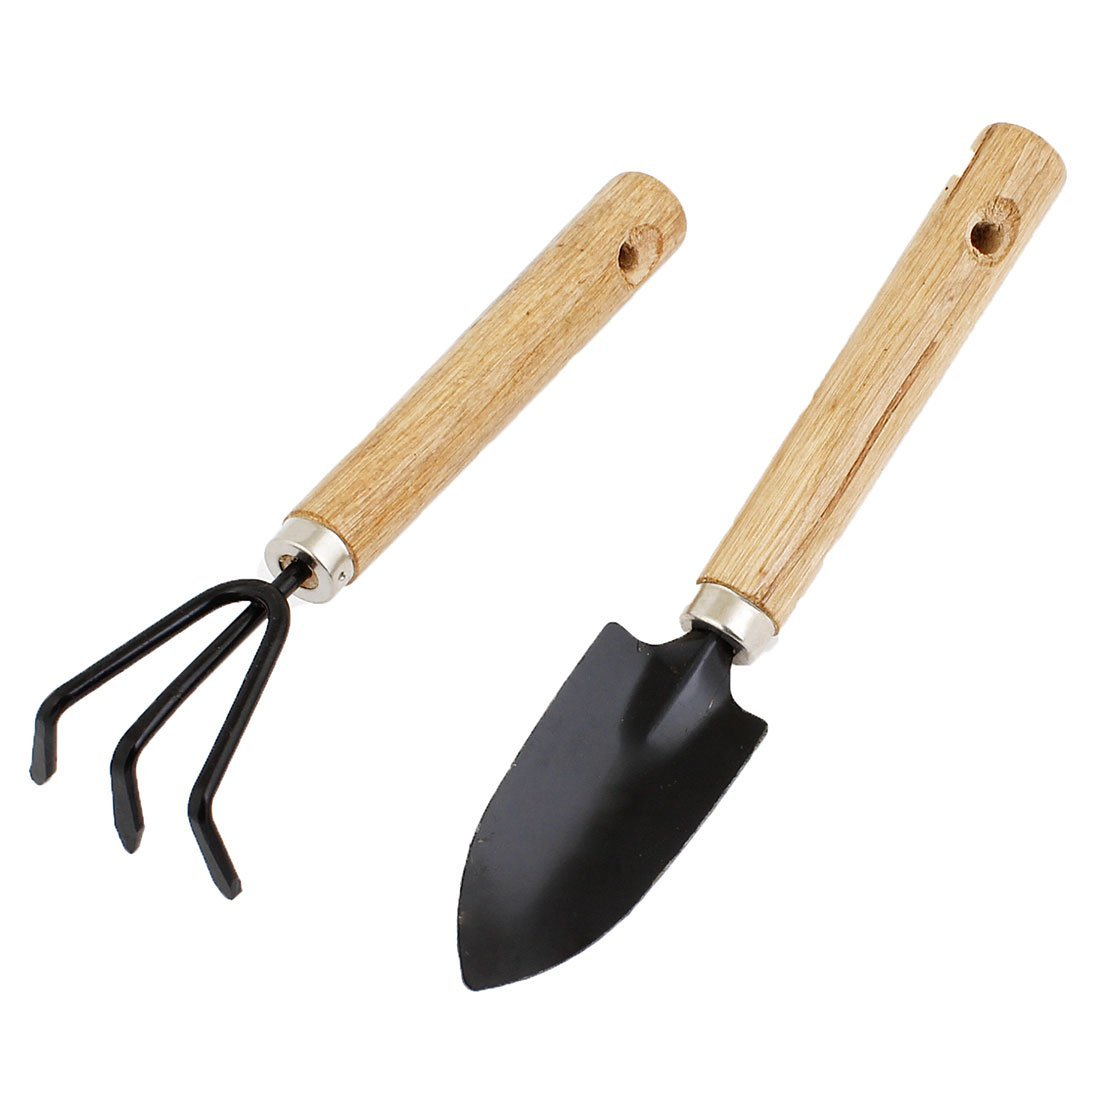 Plant garden mini tools gardening spade shovel rake set 2 for Tools for backyard gardening